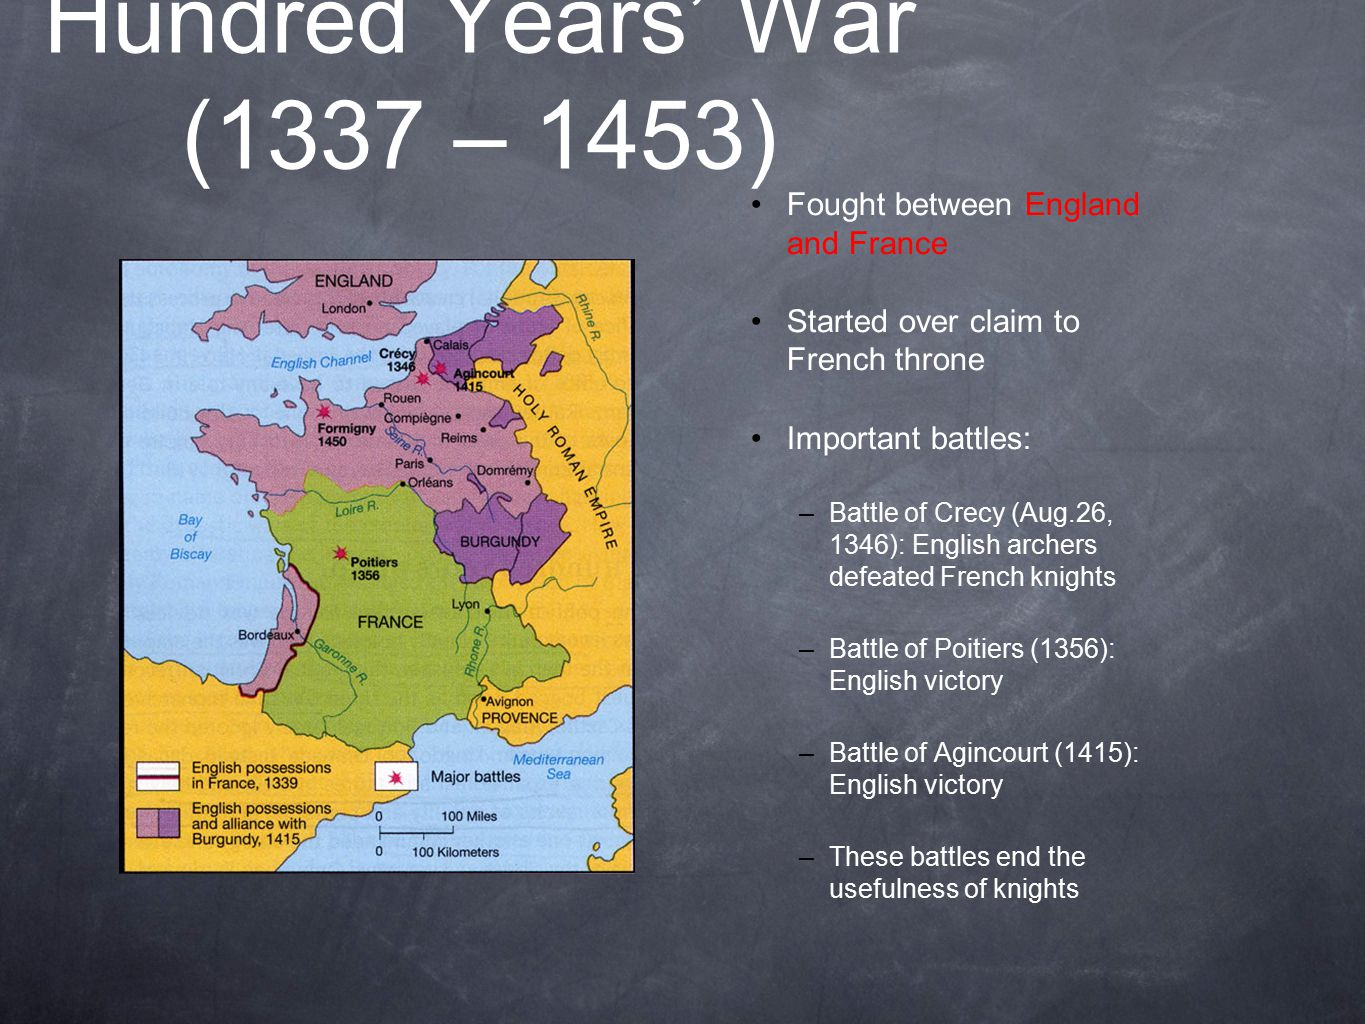 Hundred Years' War (1337 – 1453) Fought between England and France